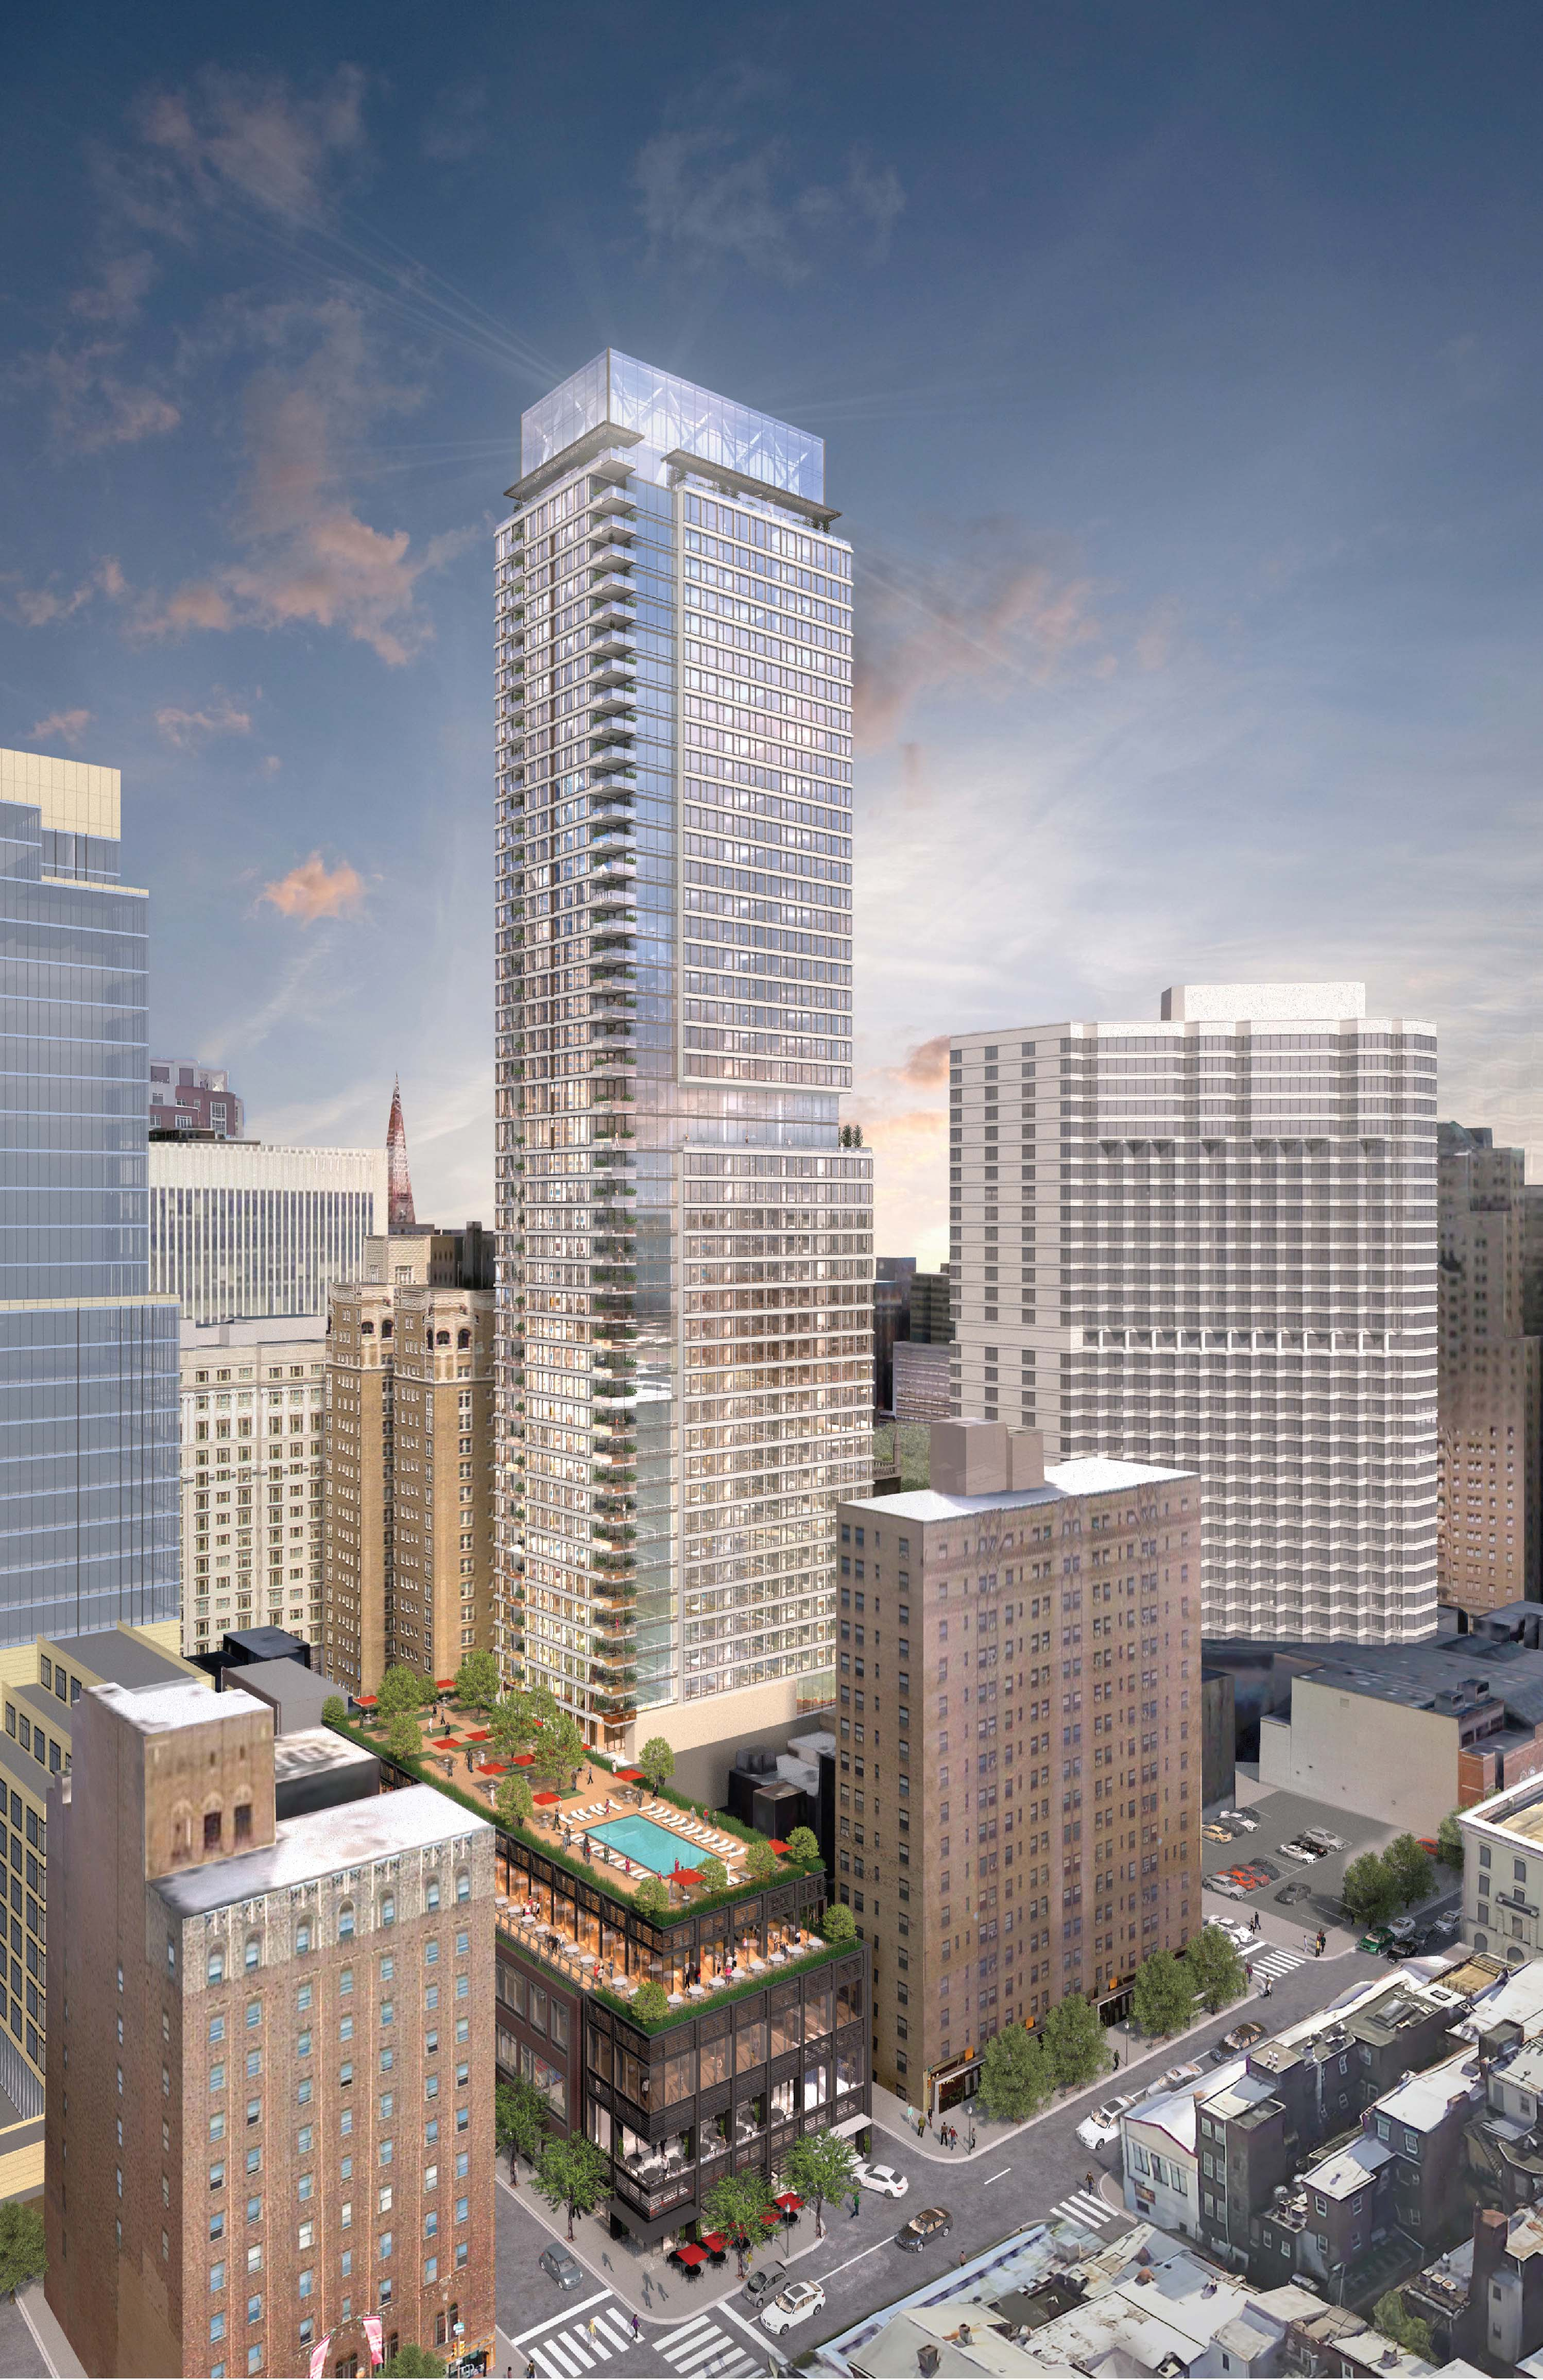 new 1911 walnut plans reveal shorter tower low income housing